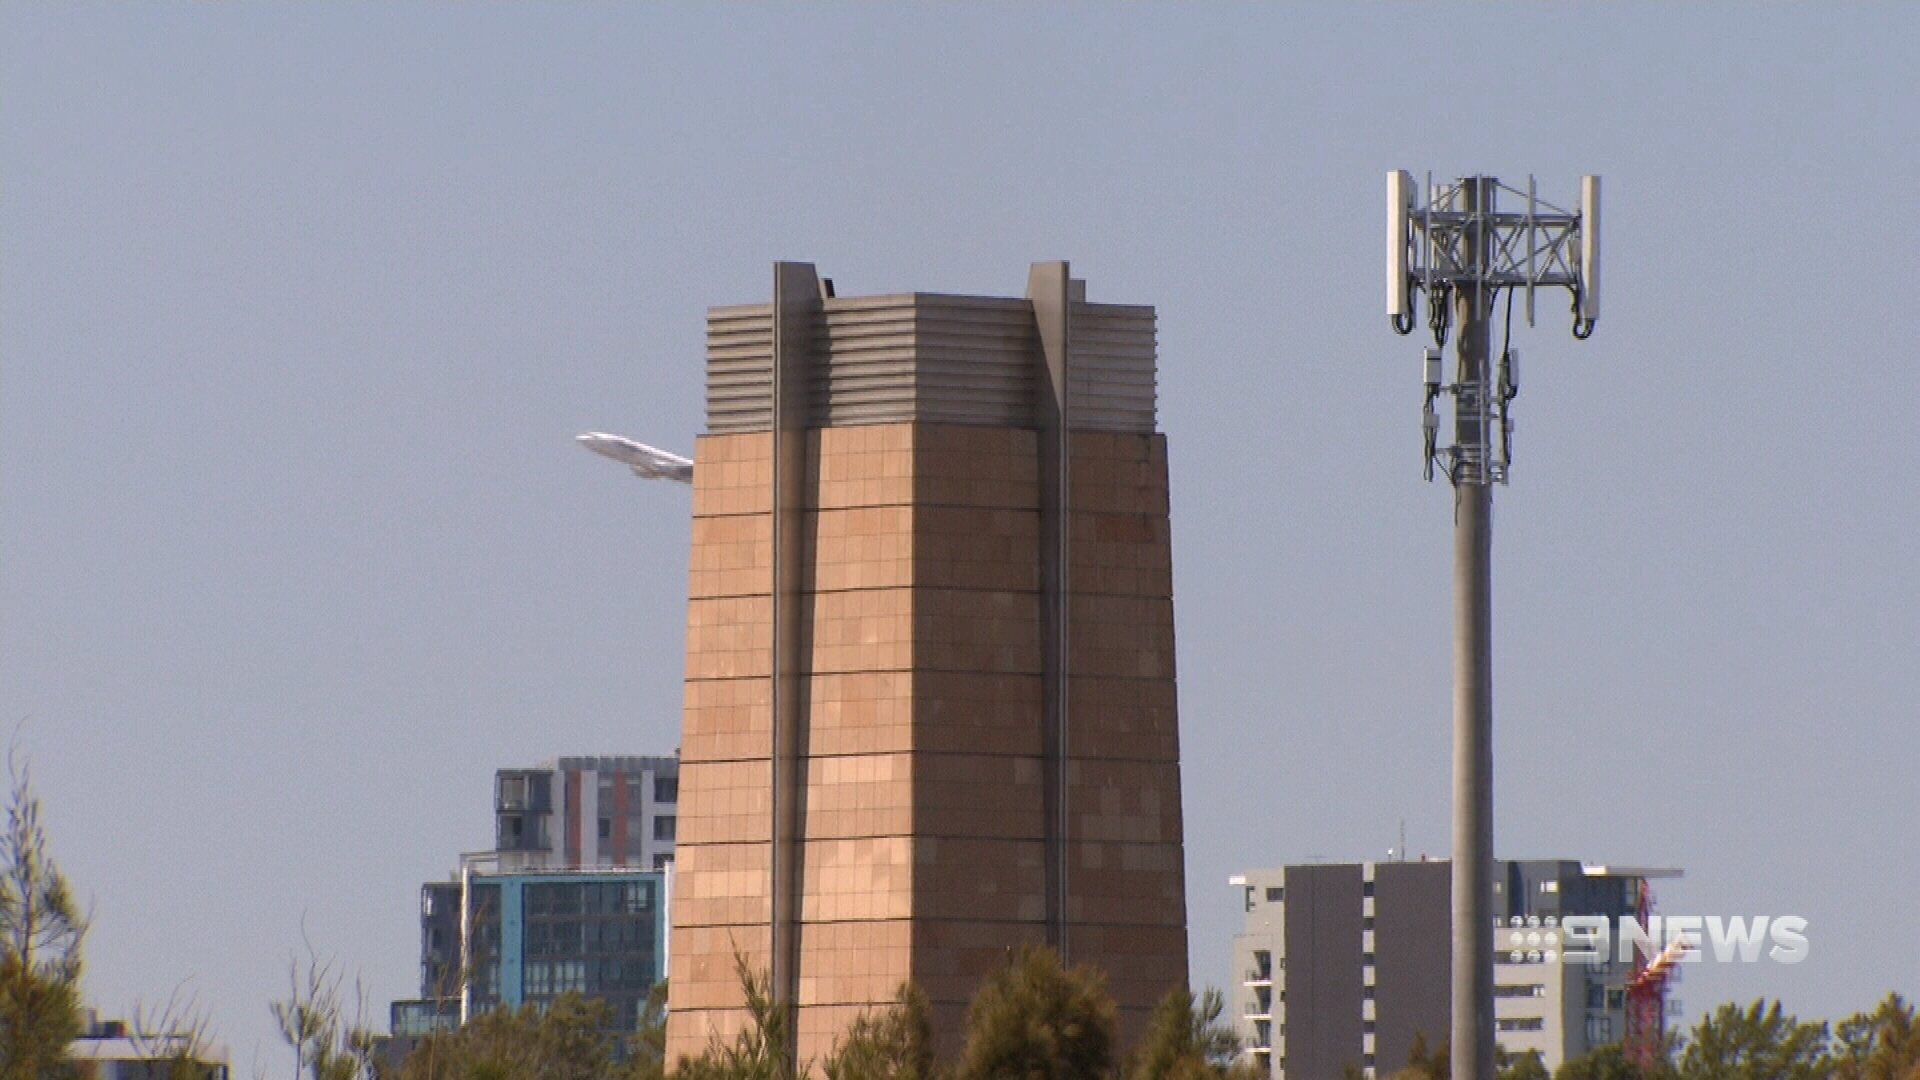 Construction of smoke stacks will pollute air around 100 schools